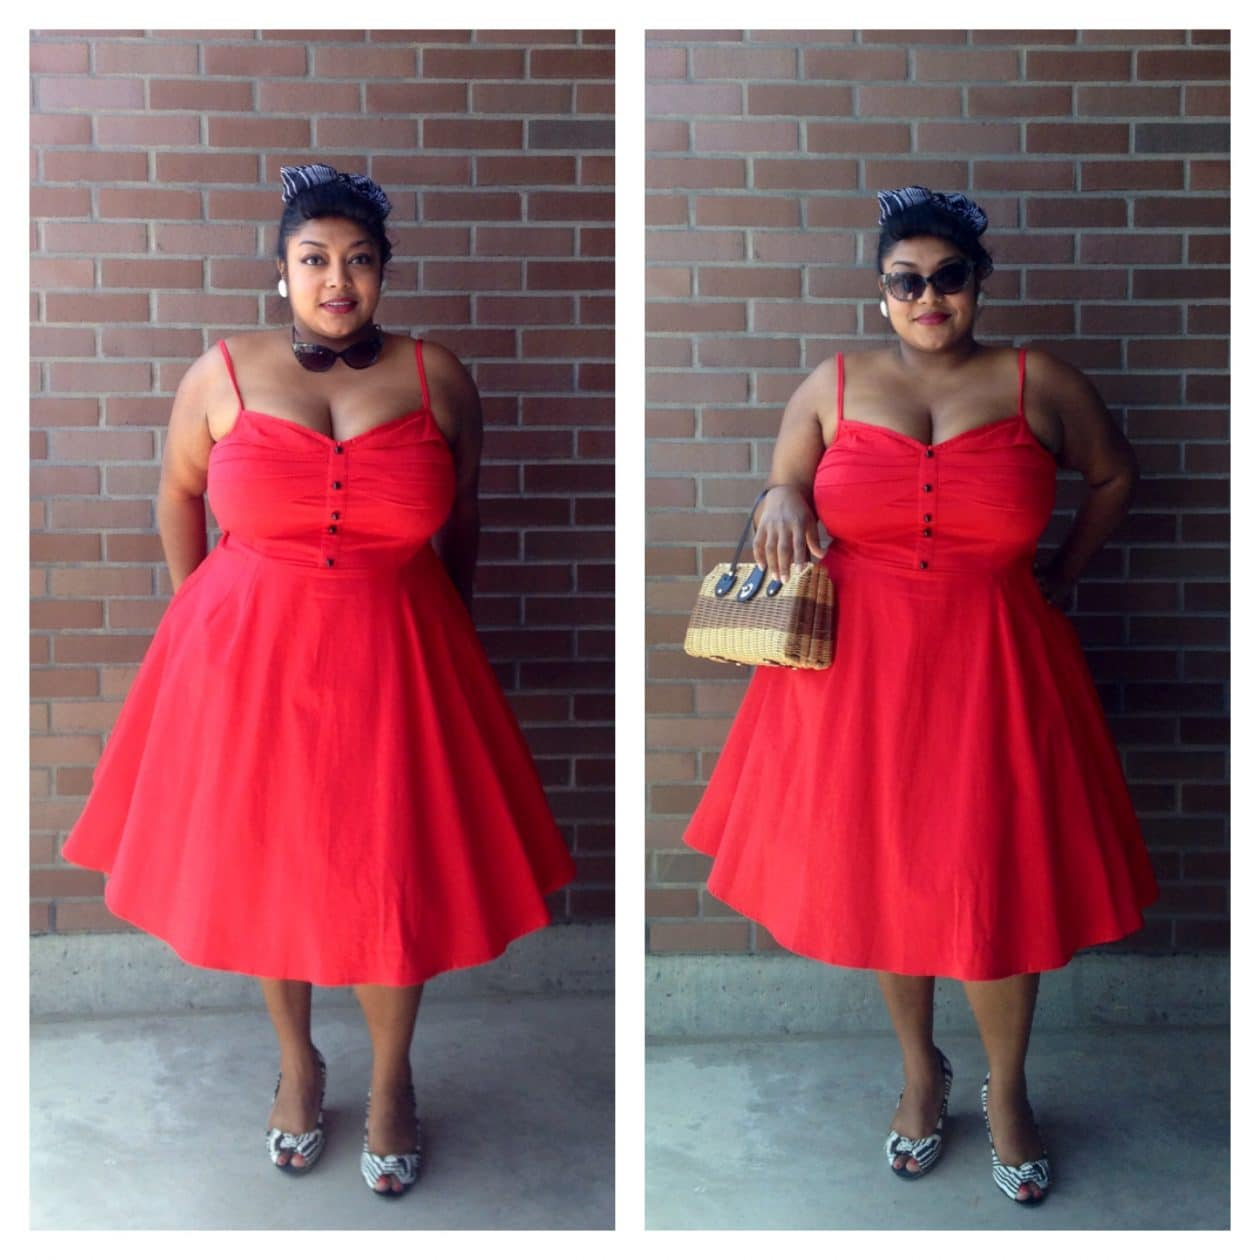 FASHION BLOGGER SPOTLIGHT: Irene of Petite Plus, Meow!